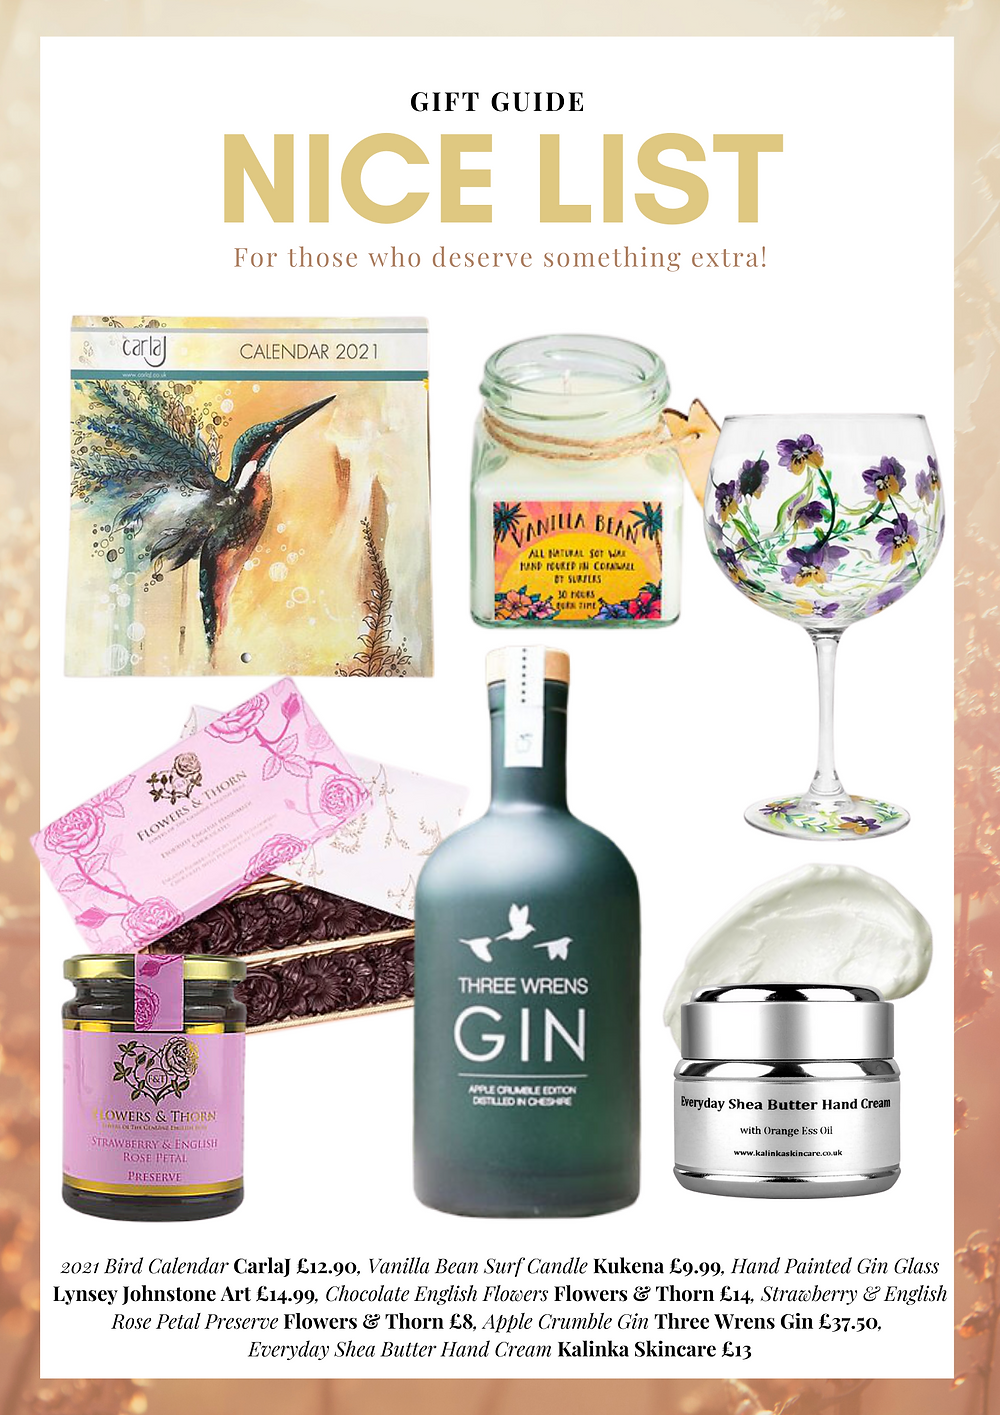 Buy British Gift Guide - for those who deserve something extra